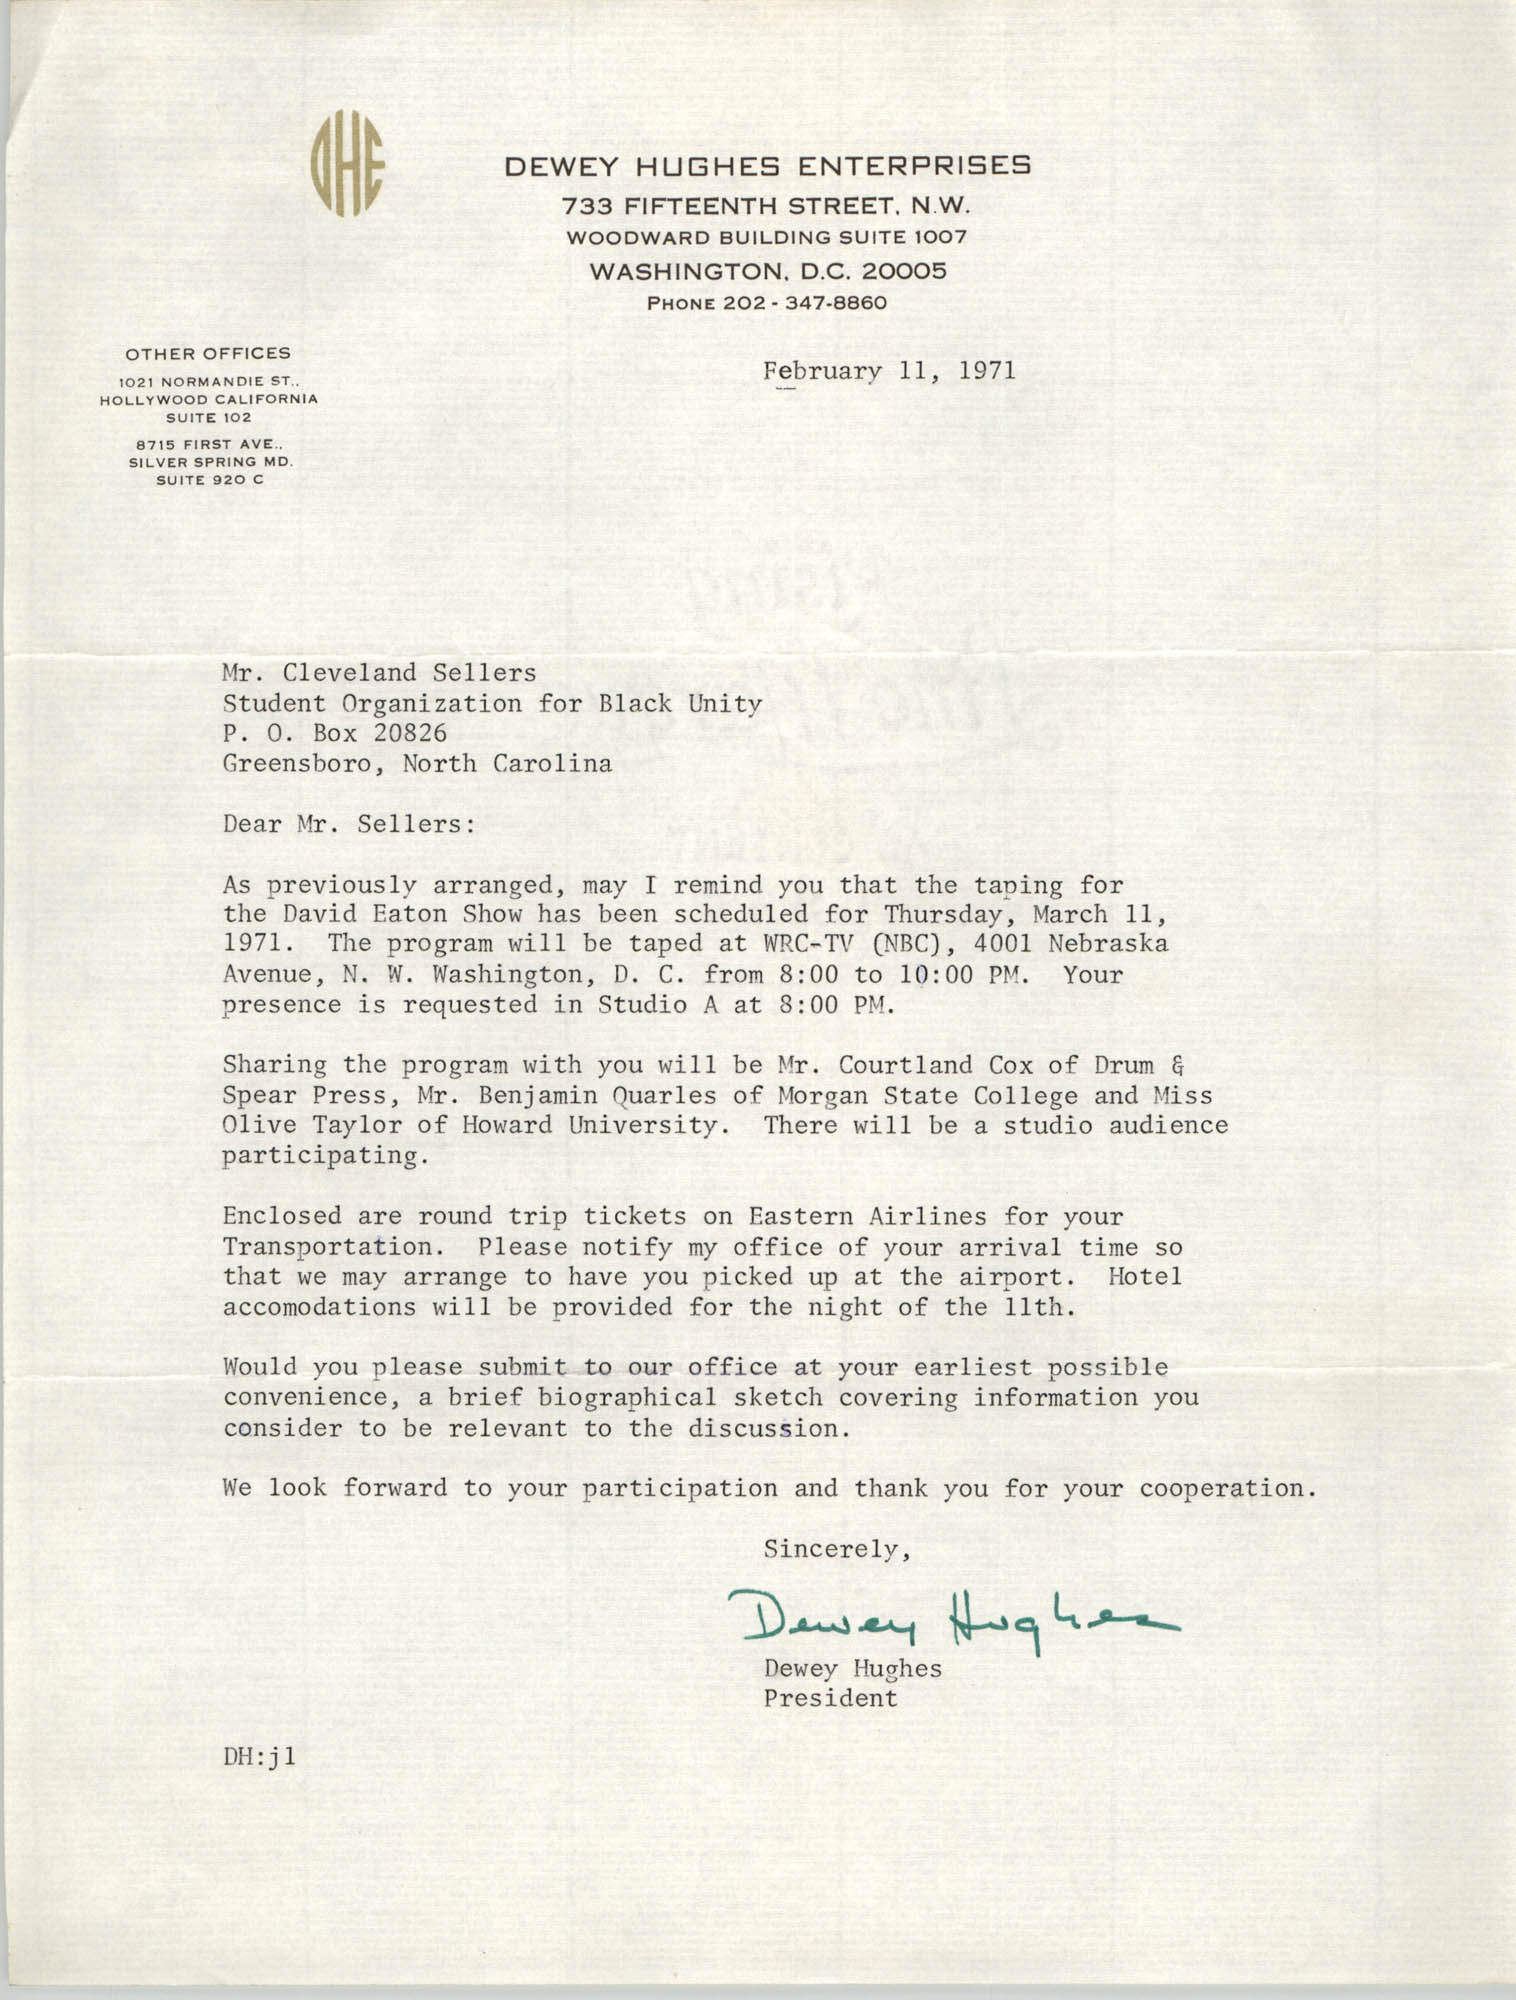 Letter from Dewey Hughes to Cleveland Sellers, February 11, 1971